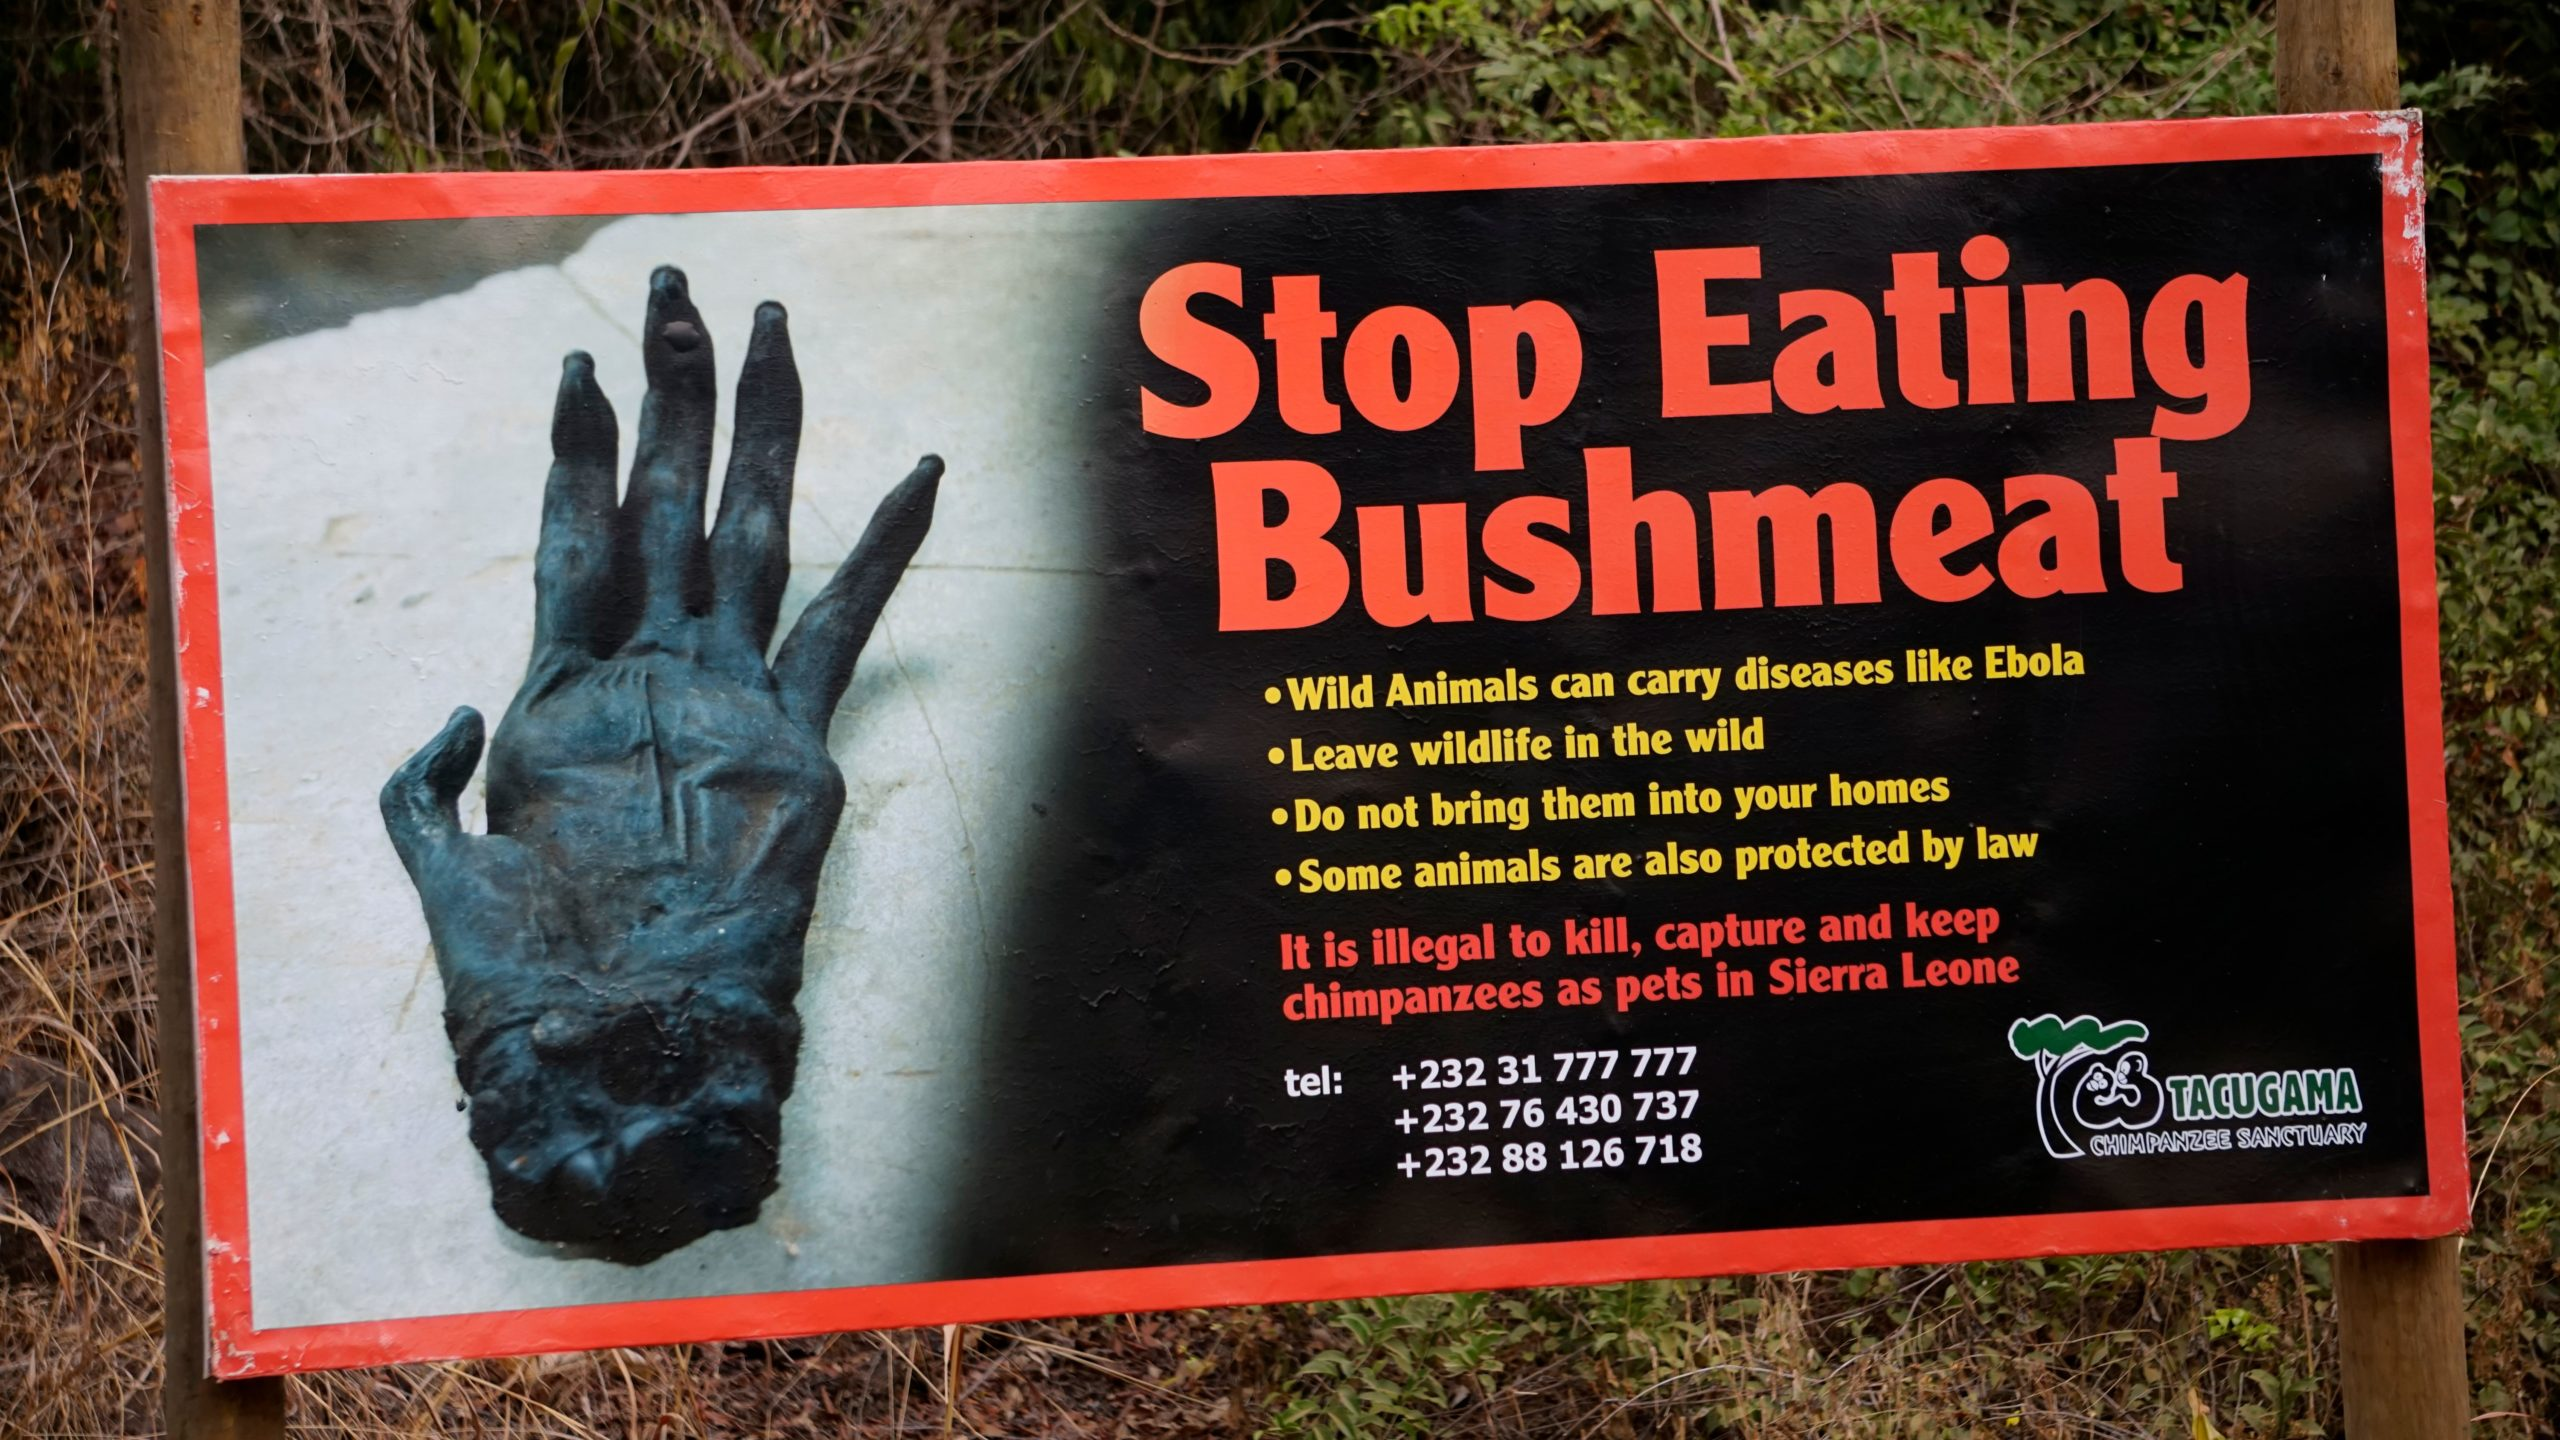 A sign of The Tacugama Chimpanzee Sanctuary on February 27, 2019, is seen during a visit by Primatologist Jane Goodall. - Hunting for bushmeat is one of the bigger threats against the critically-endangered western chimpanzee. Tacugama, which Goodall took a primary role in founding, is Sierra Leones first and only sanctuary for chimpanzees. (Photo by STR / AFP) (Photo credit should read STR/AFP via Getty Images)